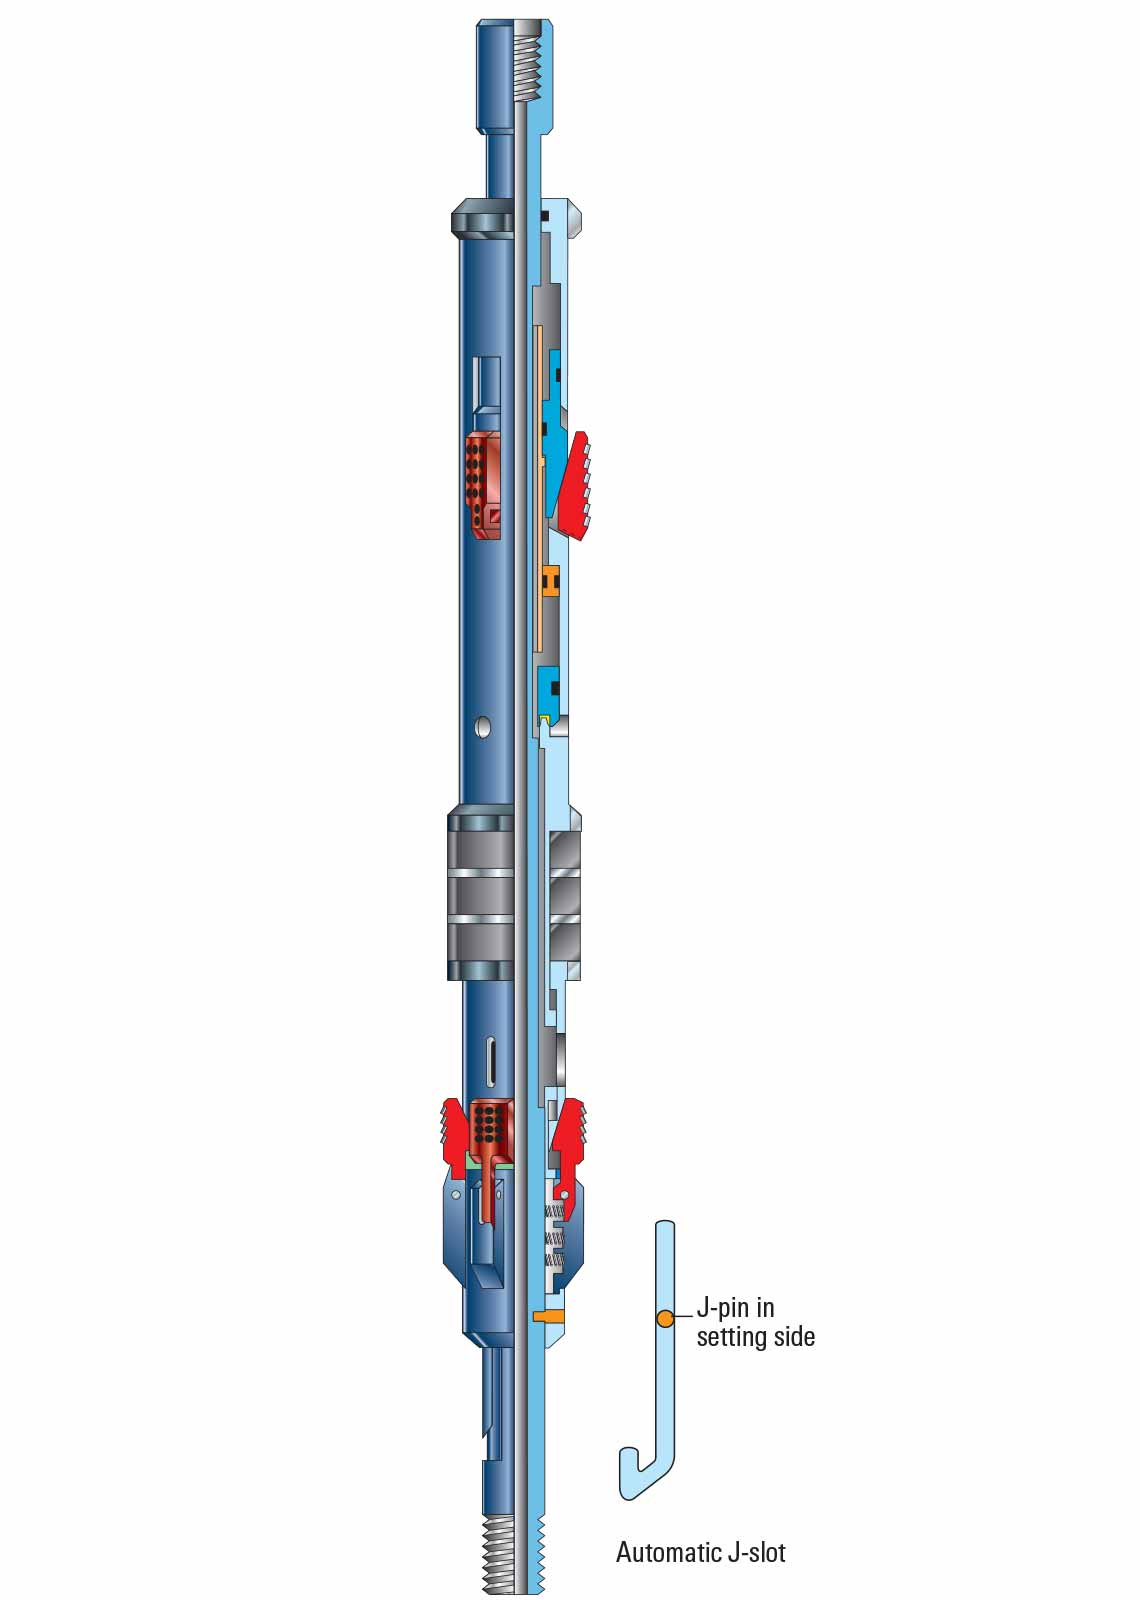 Positrieve compression-set downhole packer for well testing with integral hold-down slip system